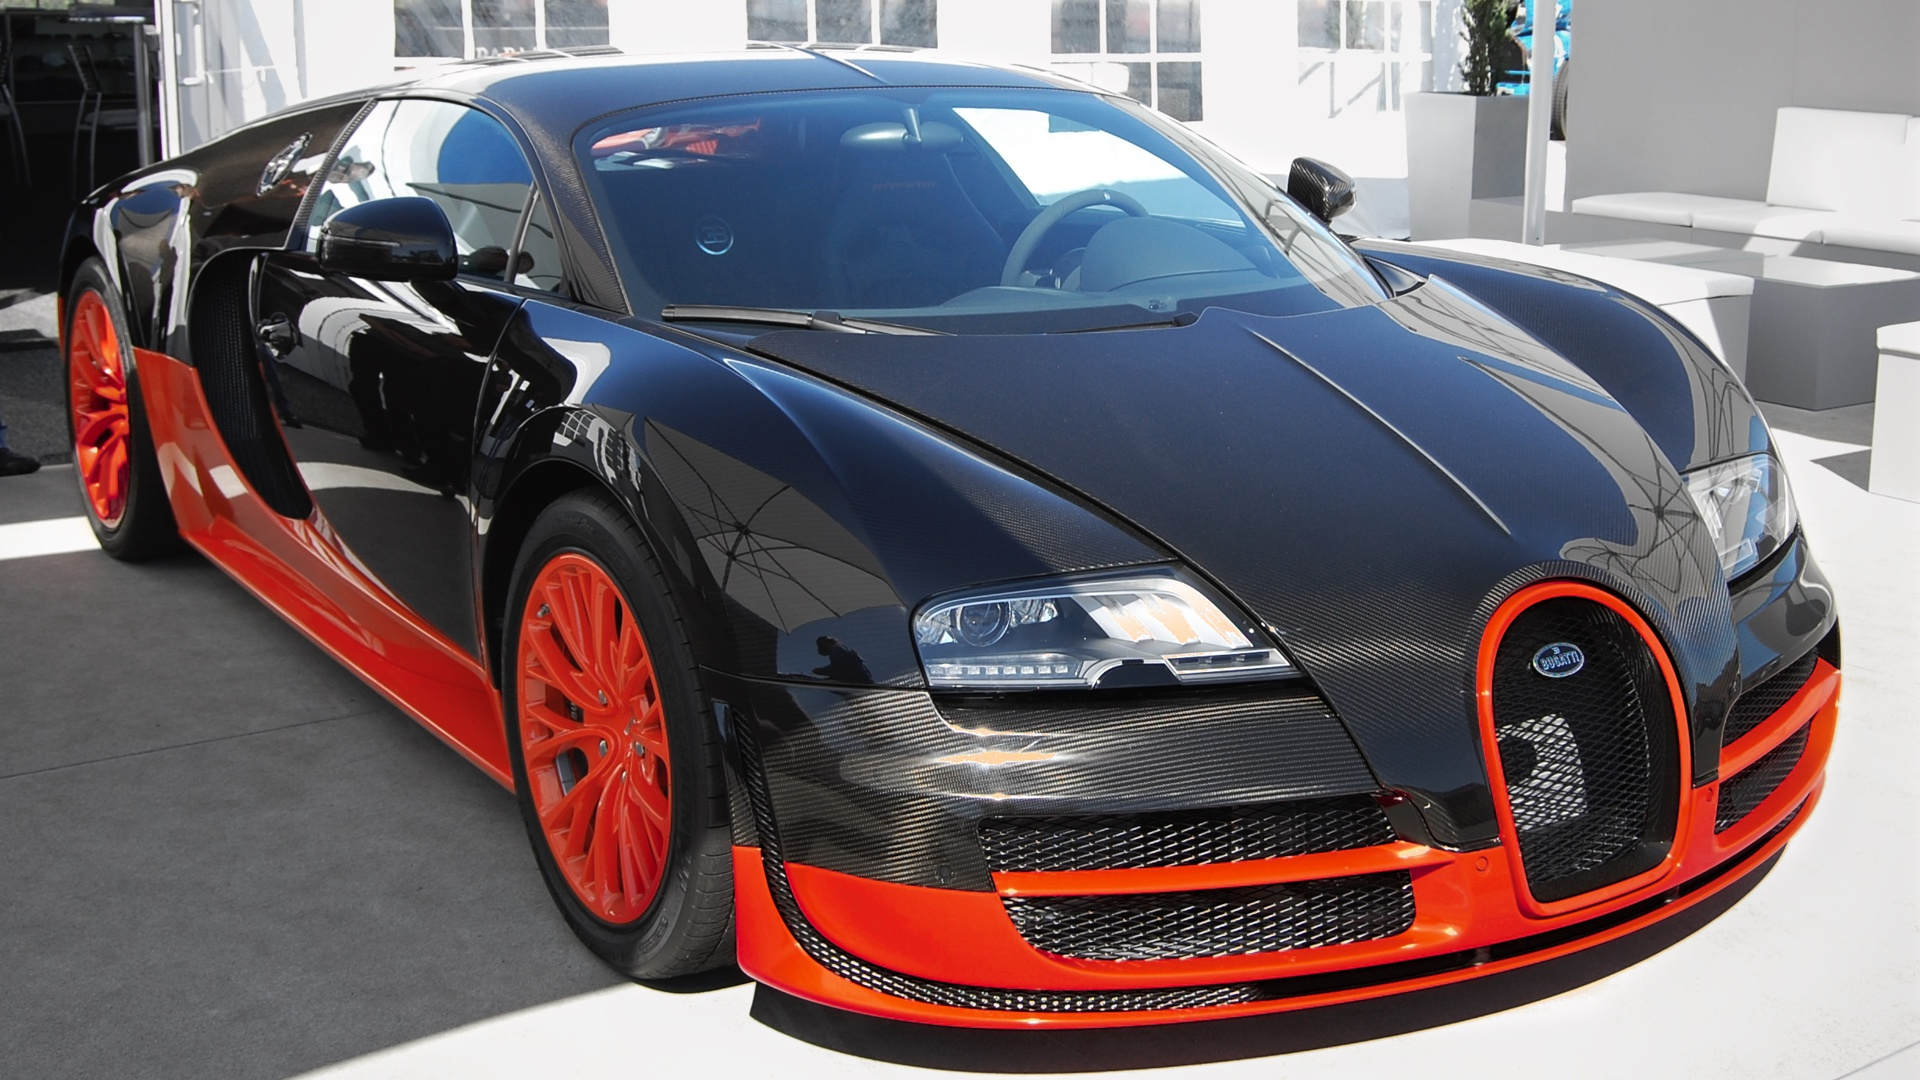 Bugatti on HD Wallpapers for YOUR desktopGalibier Veyron and more 1920x1080